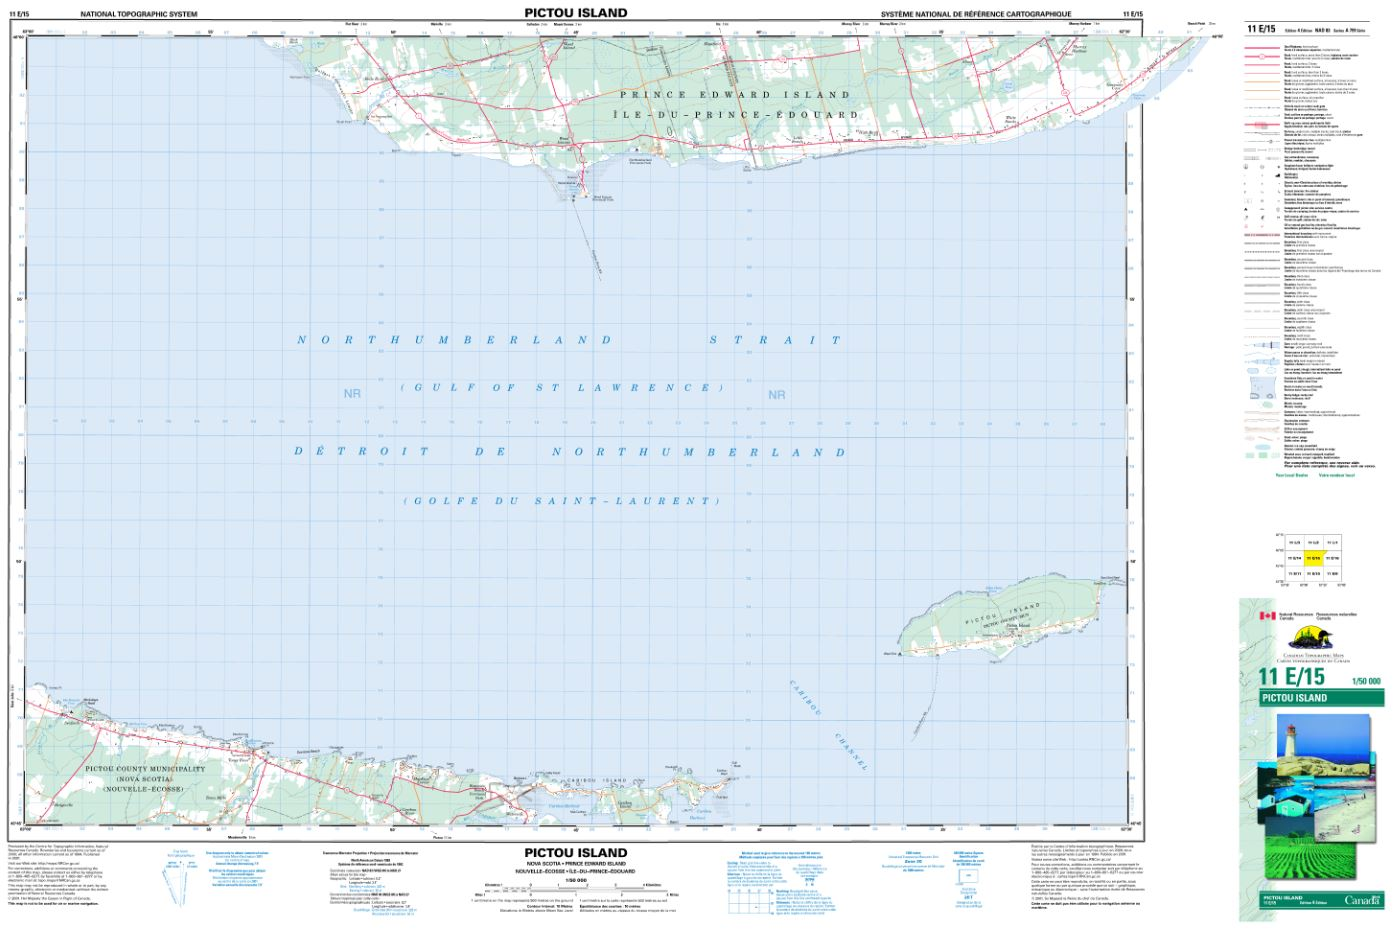 11E/15 Pictou Island Topographic Map Nova Scotia